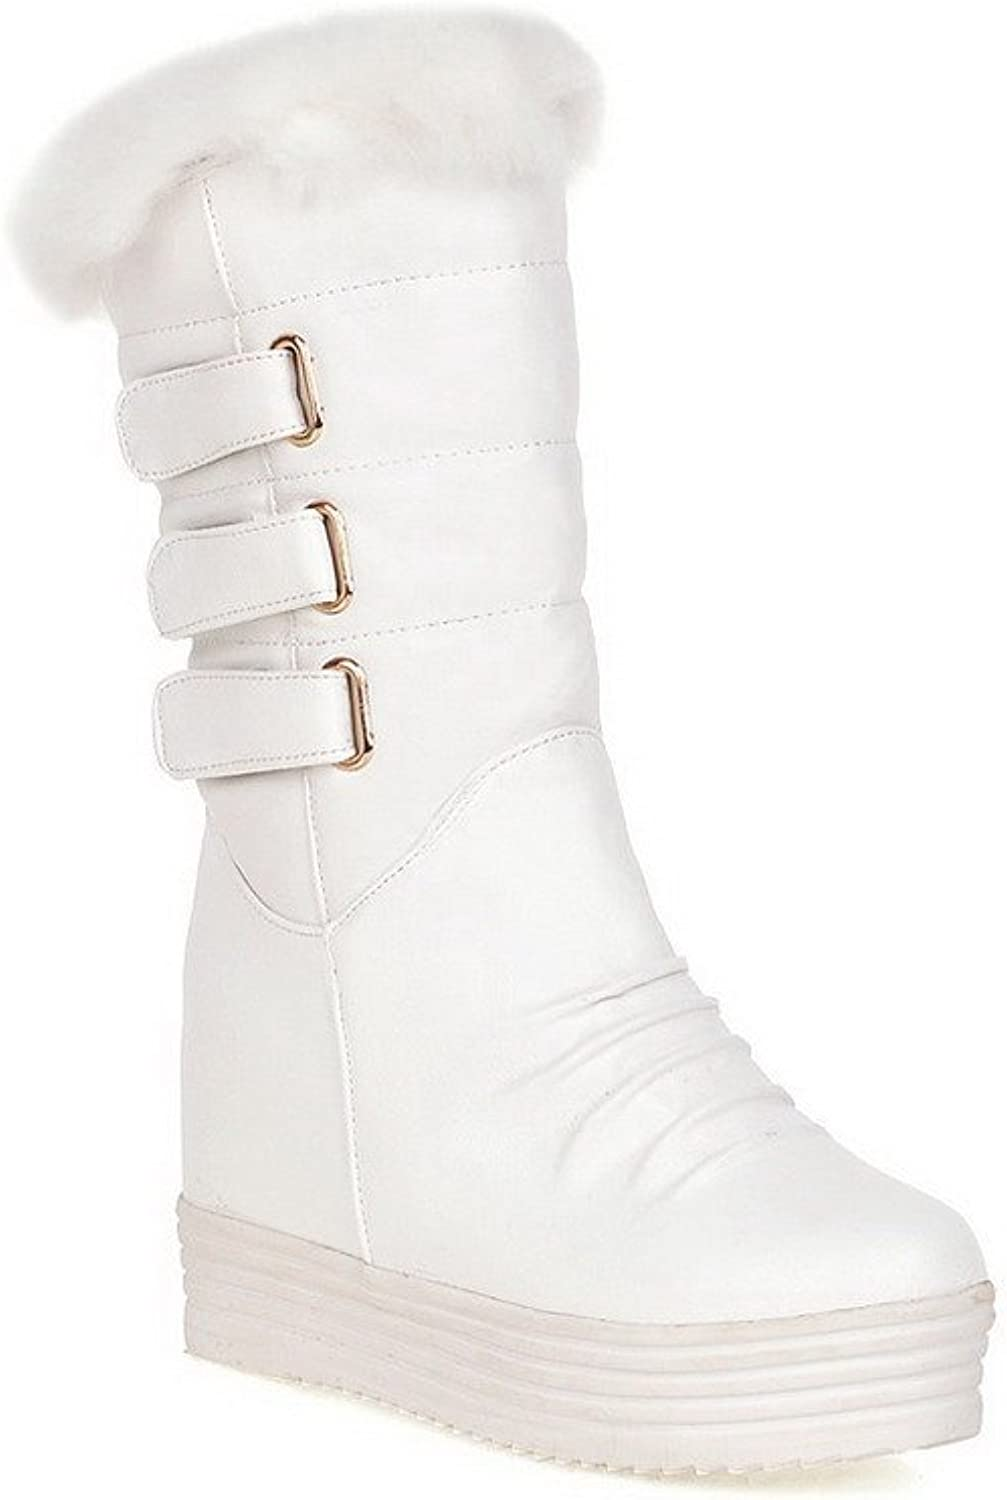 WeenFashion Women's Pu Mid Top Solid Pull On High Heels Boots